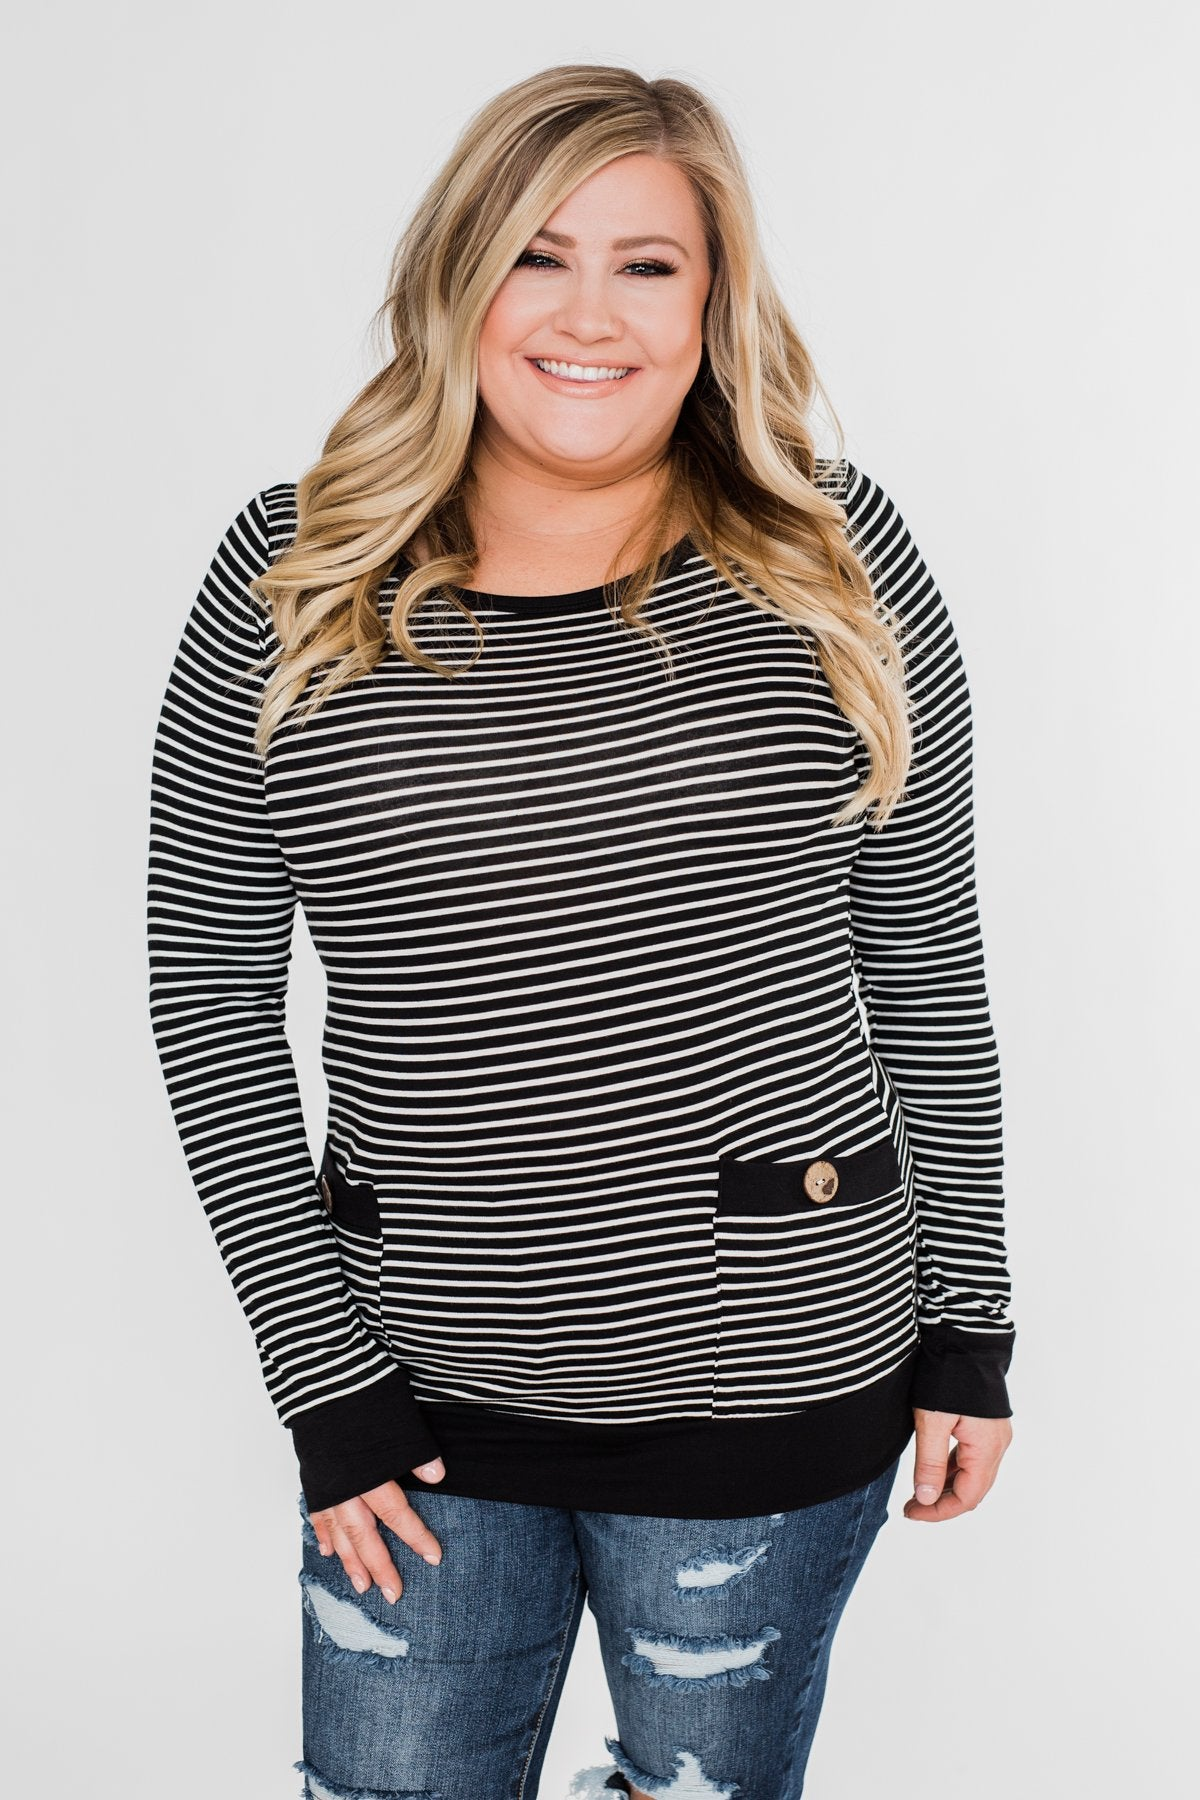 So Much In Common Striped Pocket Top- Black